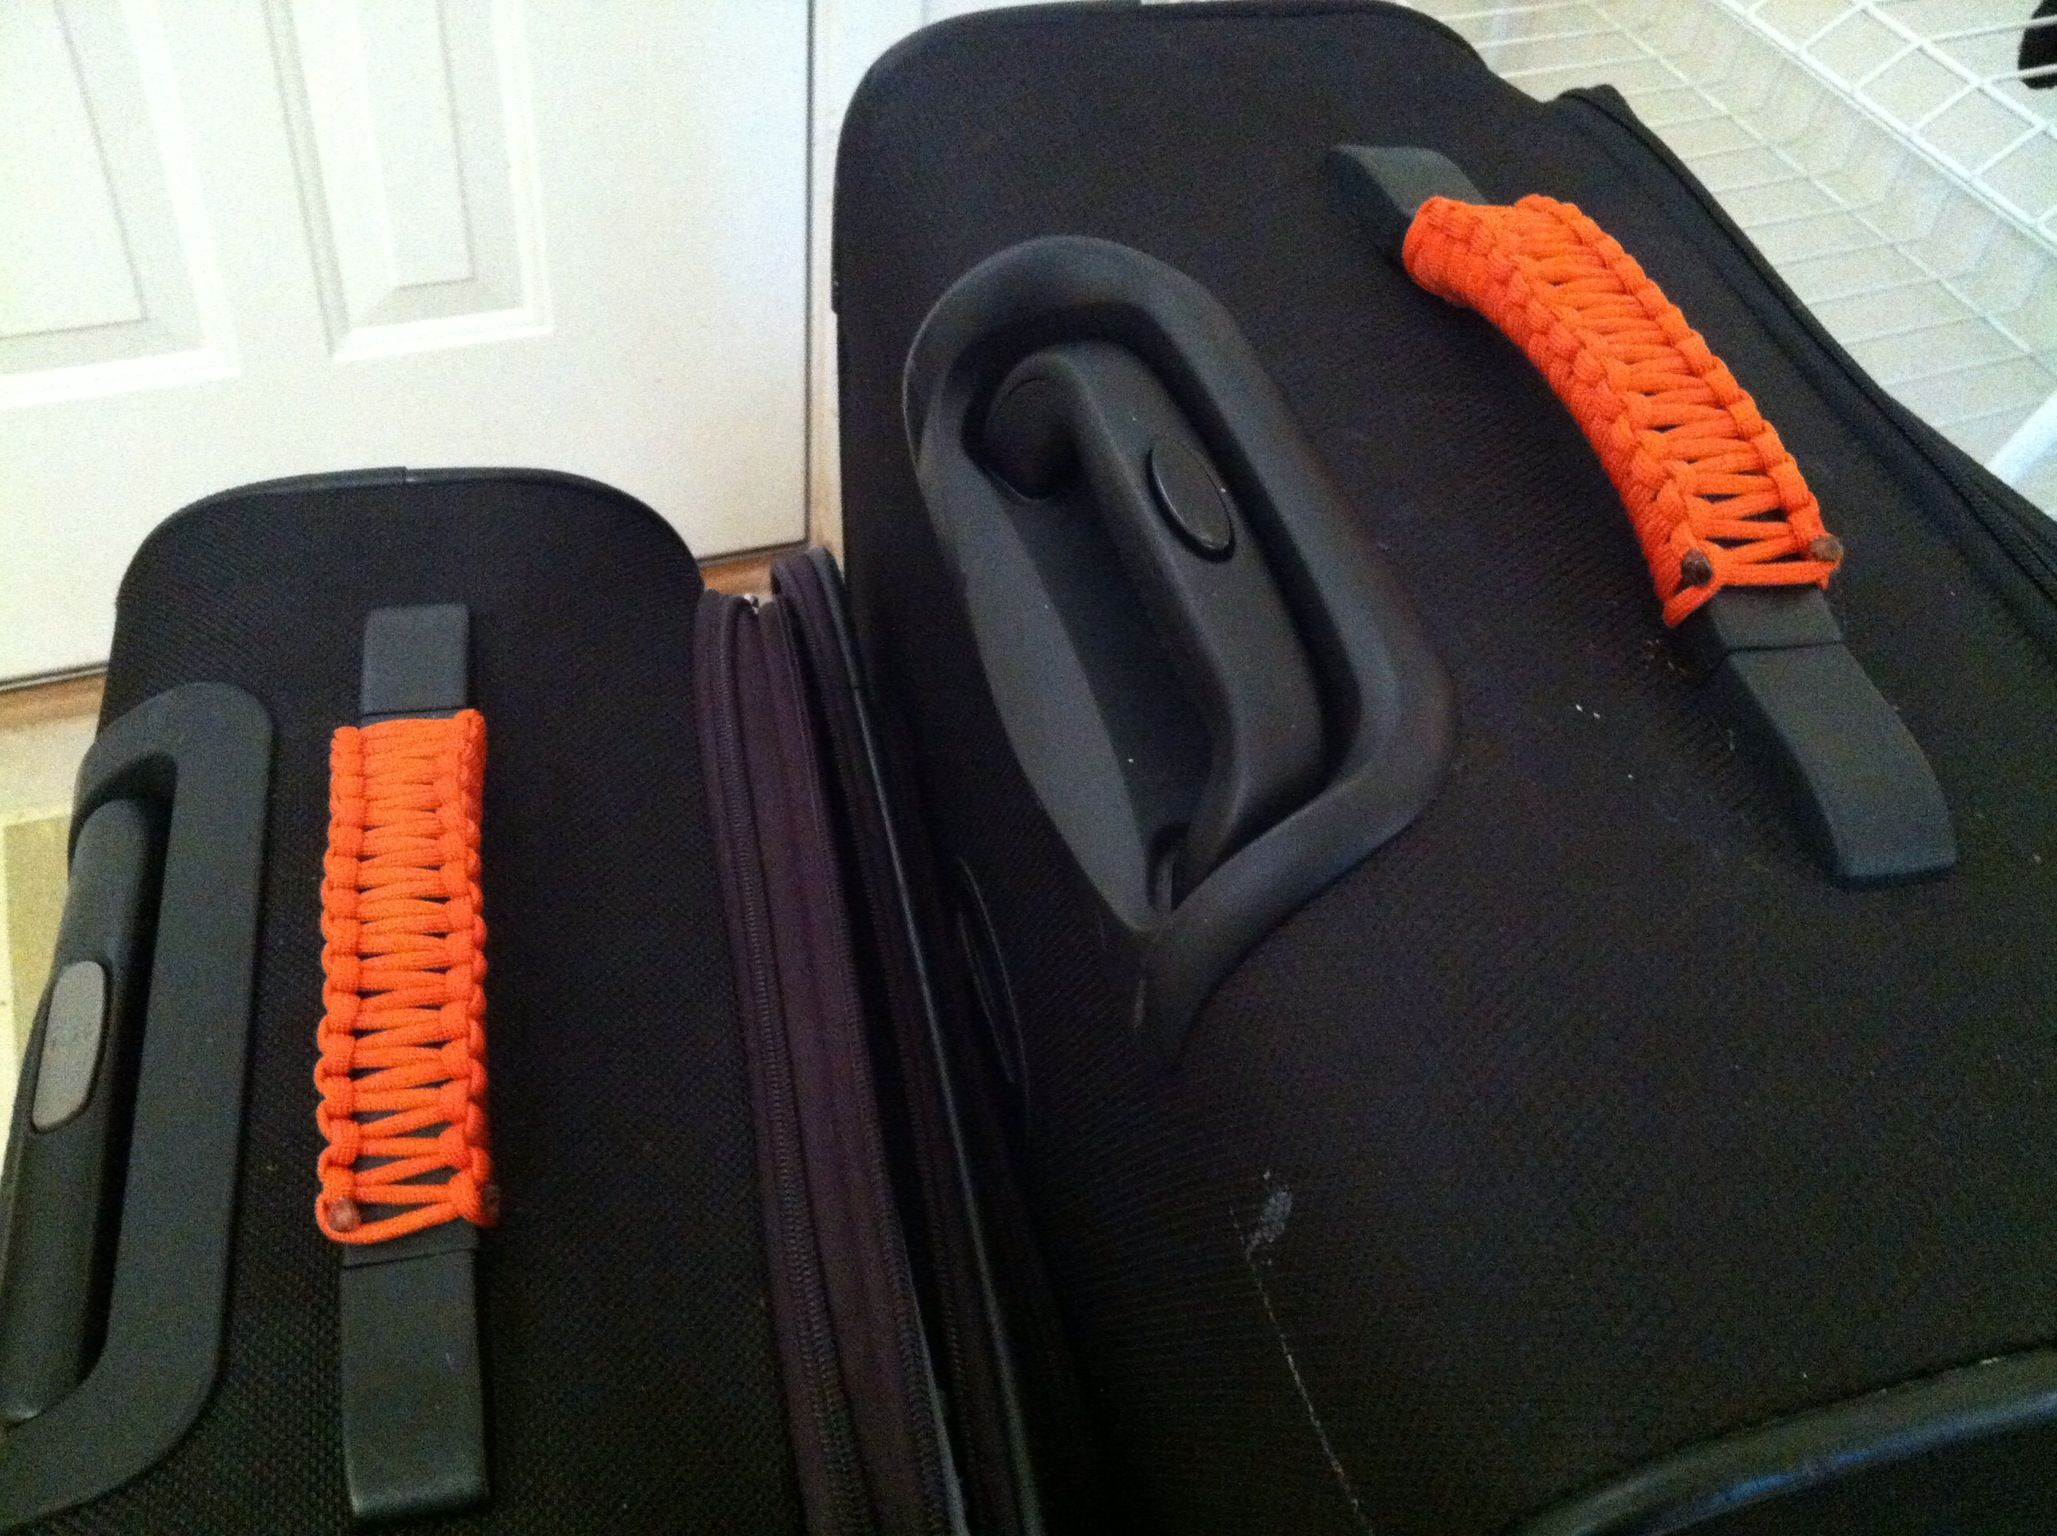 6940879b9462 Paracord luggage identifiers. | Neat Projects | Luggage identifiers ...